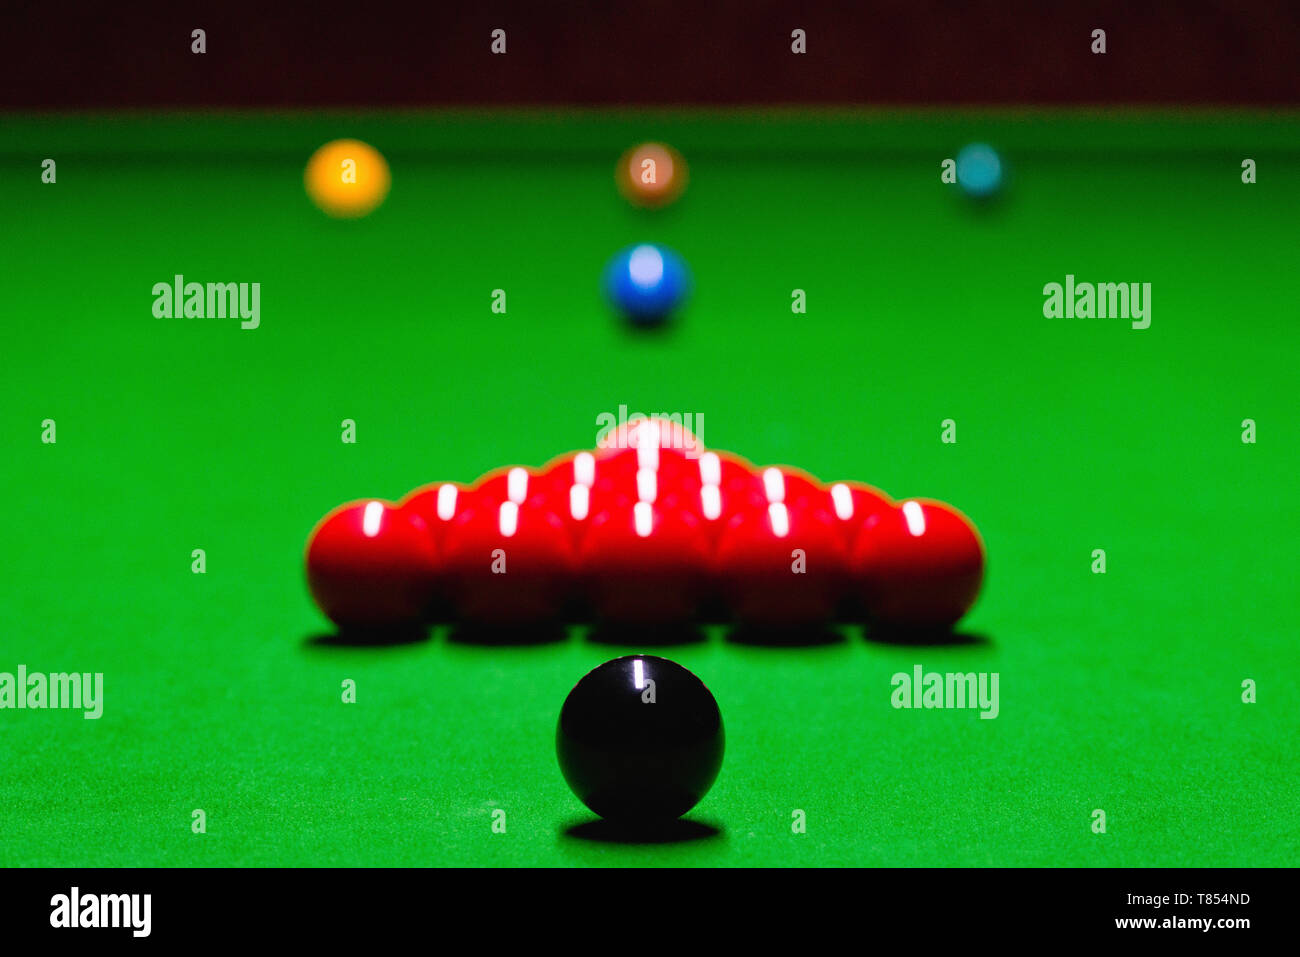 Snooker table setup - Stock Image